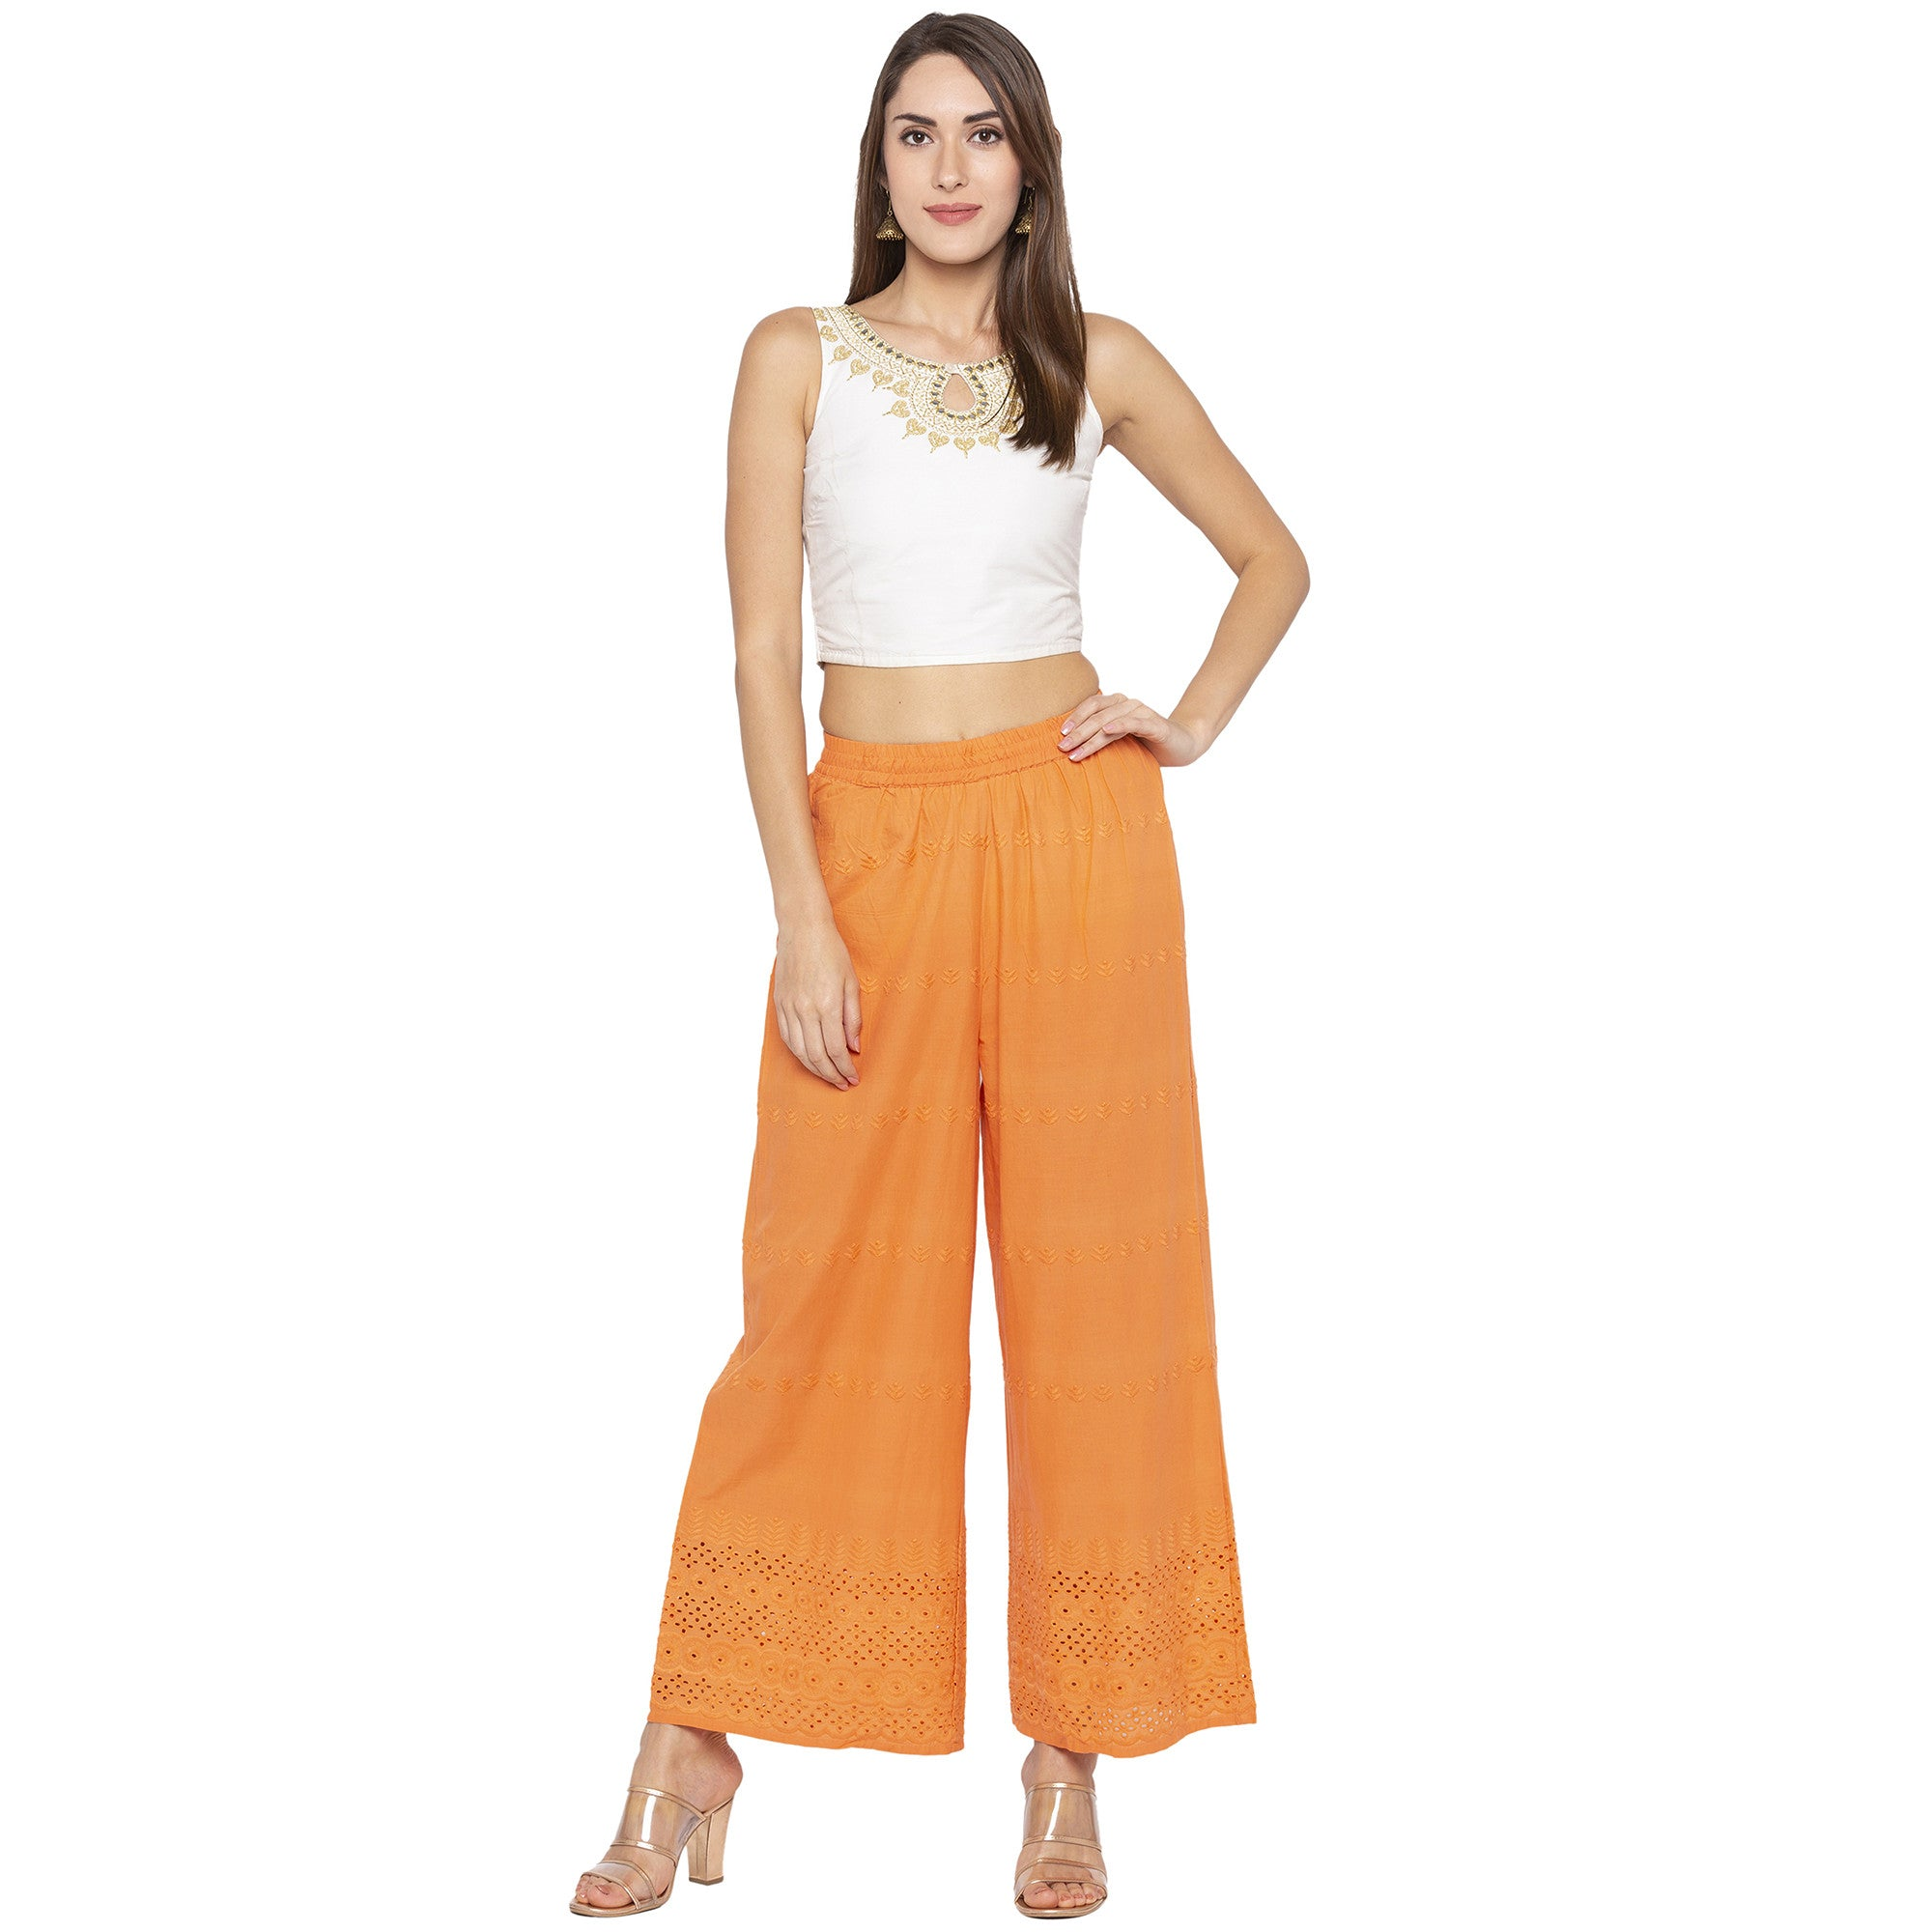 Casual Orange Color Loose Fit Regular Parallel Trousers-4